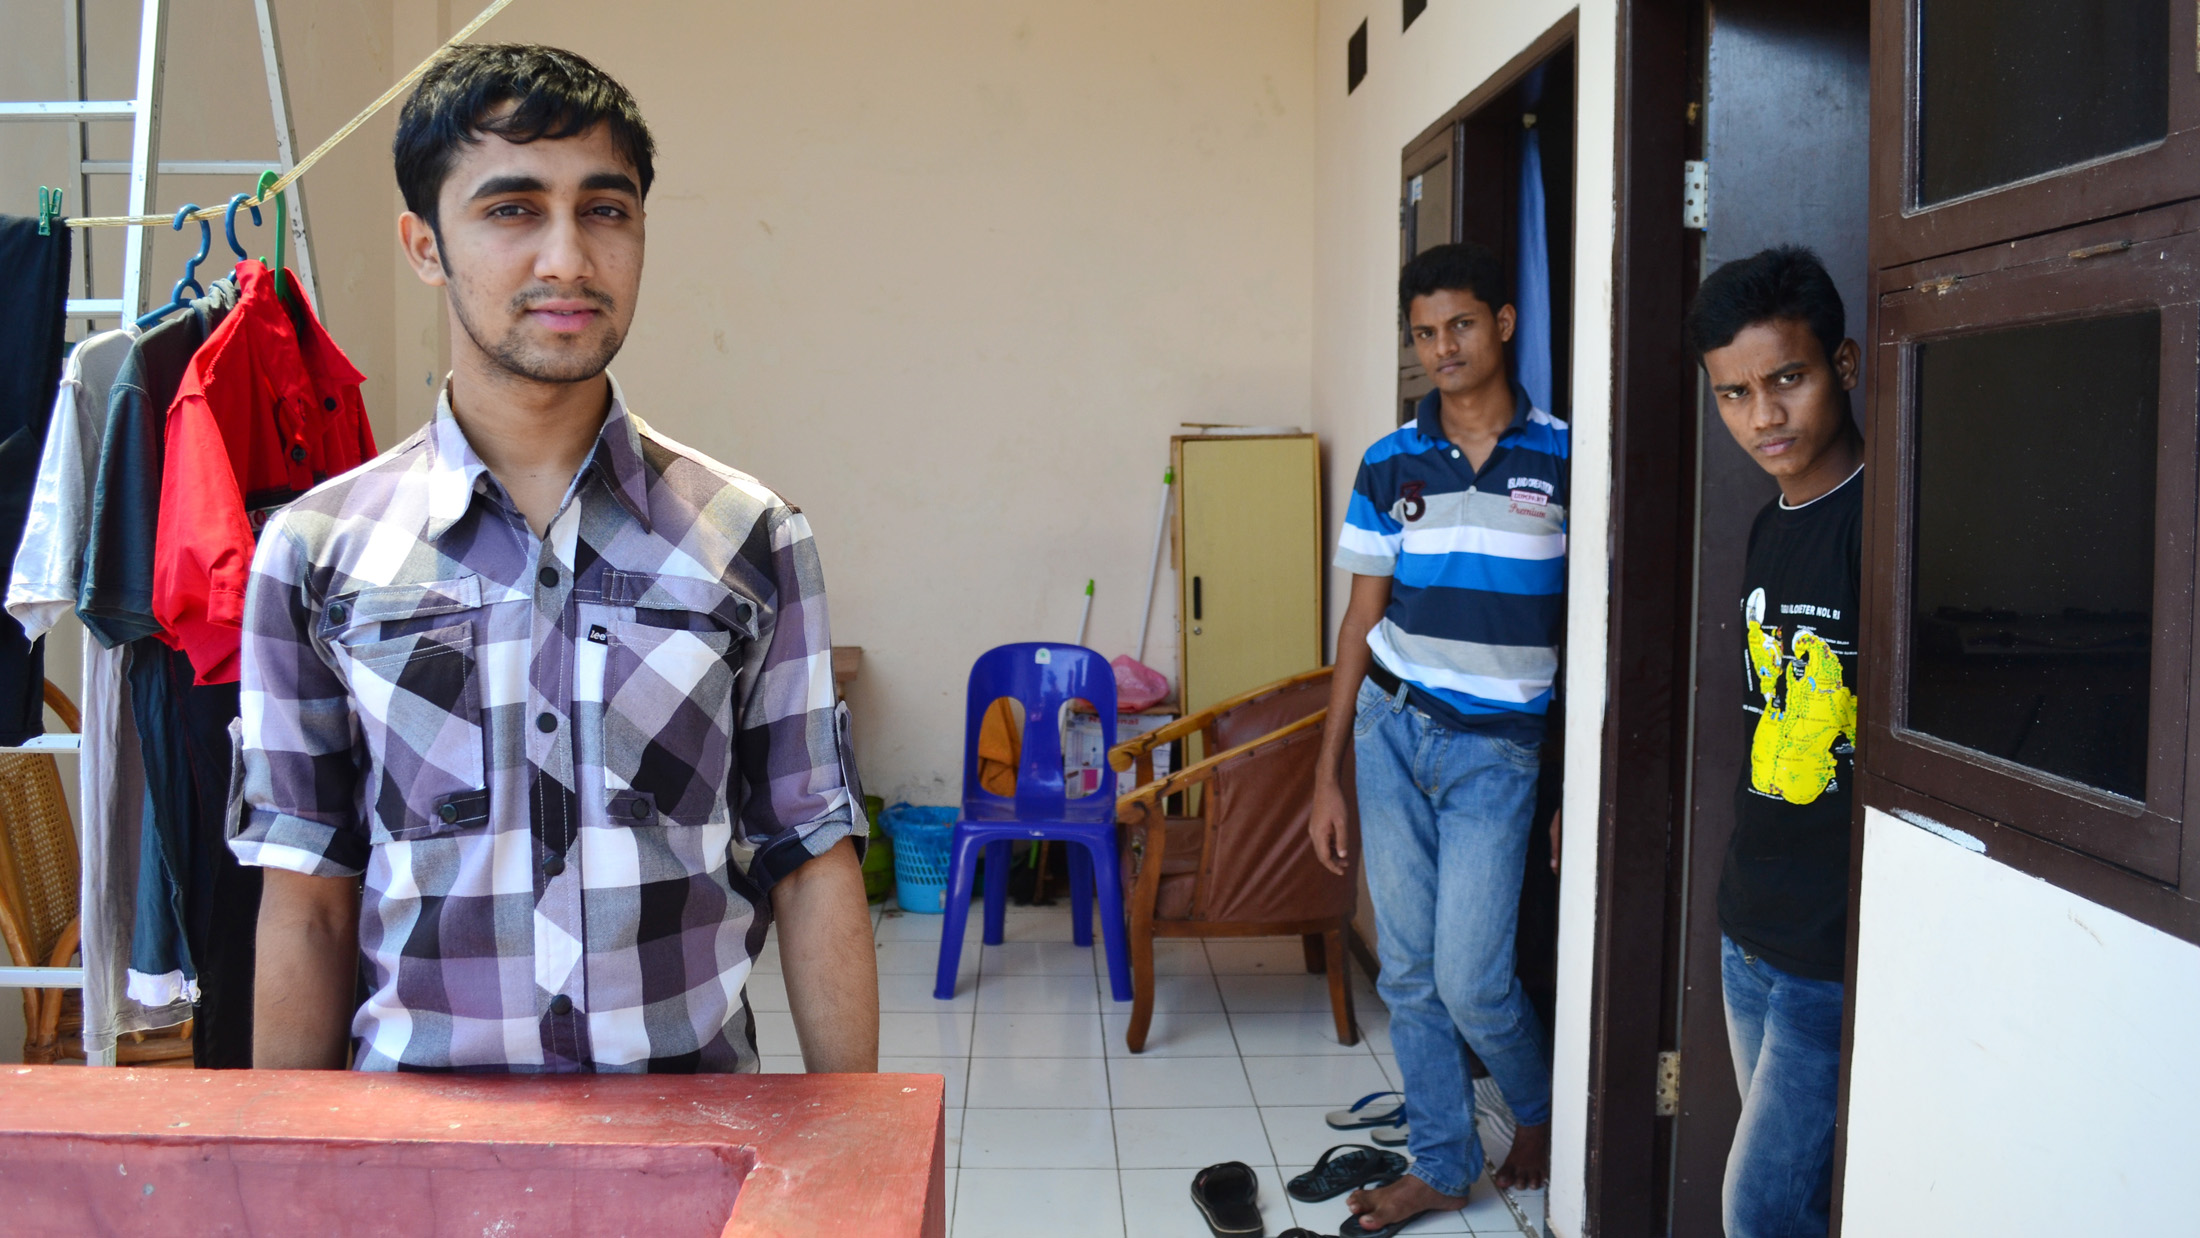 Mohammed Musa, 20, a Rohingya refugee from Myanmar has been in Indonesia for a year, eight months of which he spent in detention. Now he is staying at accommodation provided by the International Organization for Migration in Makassar